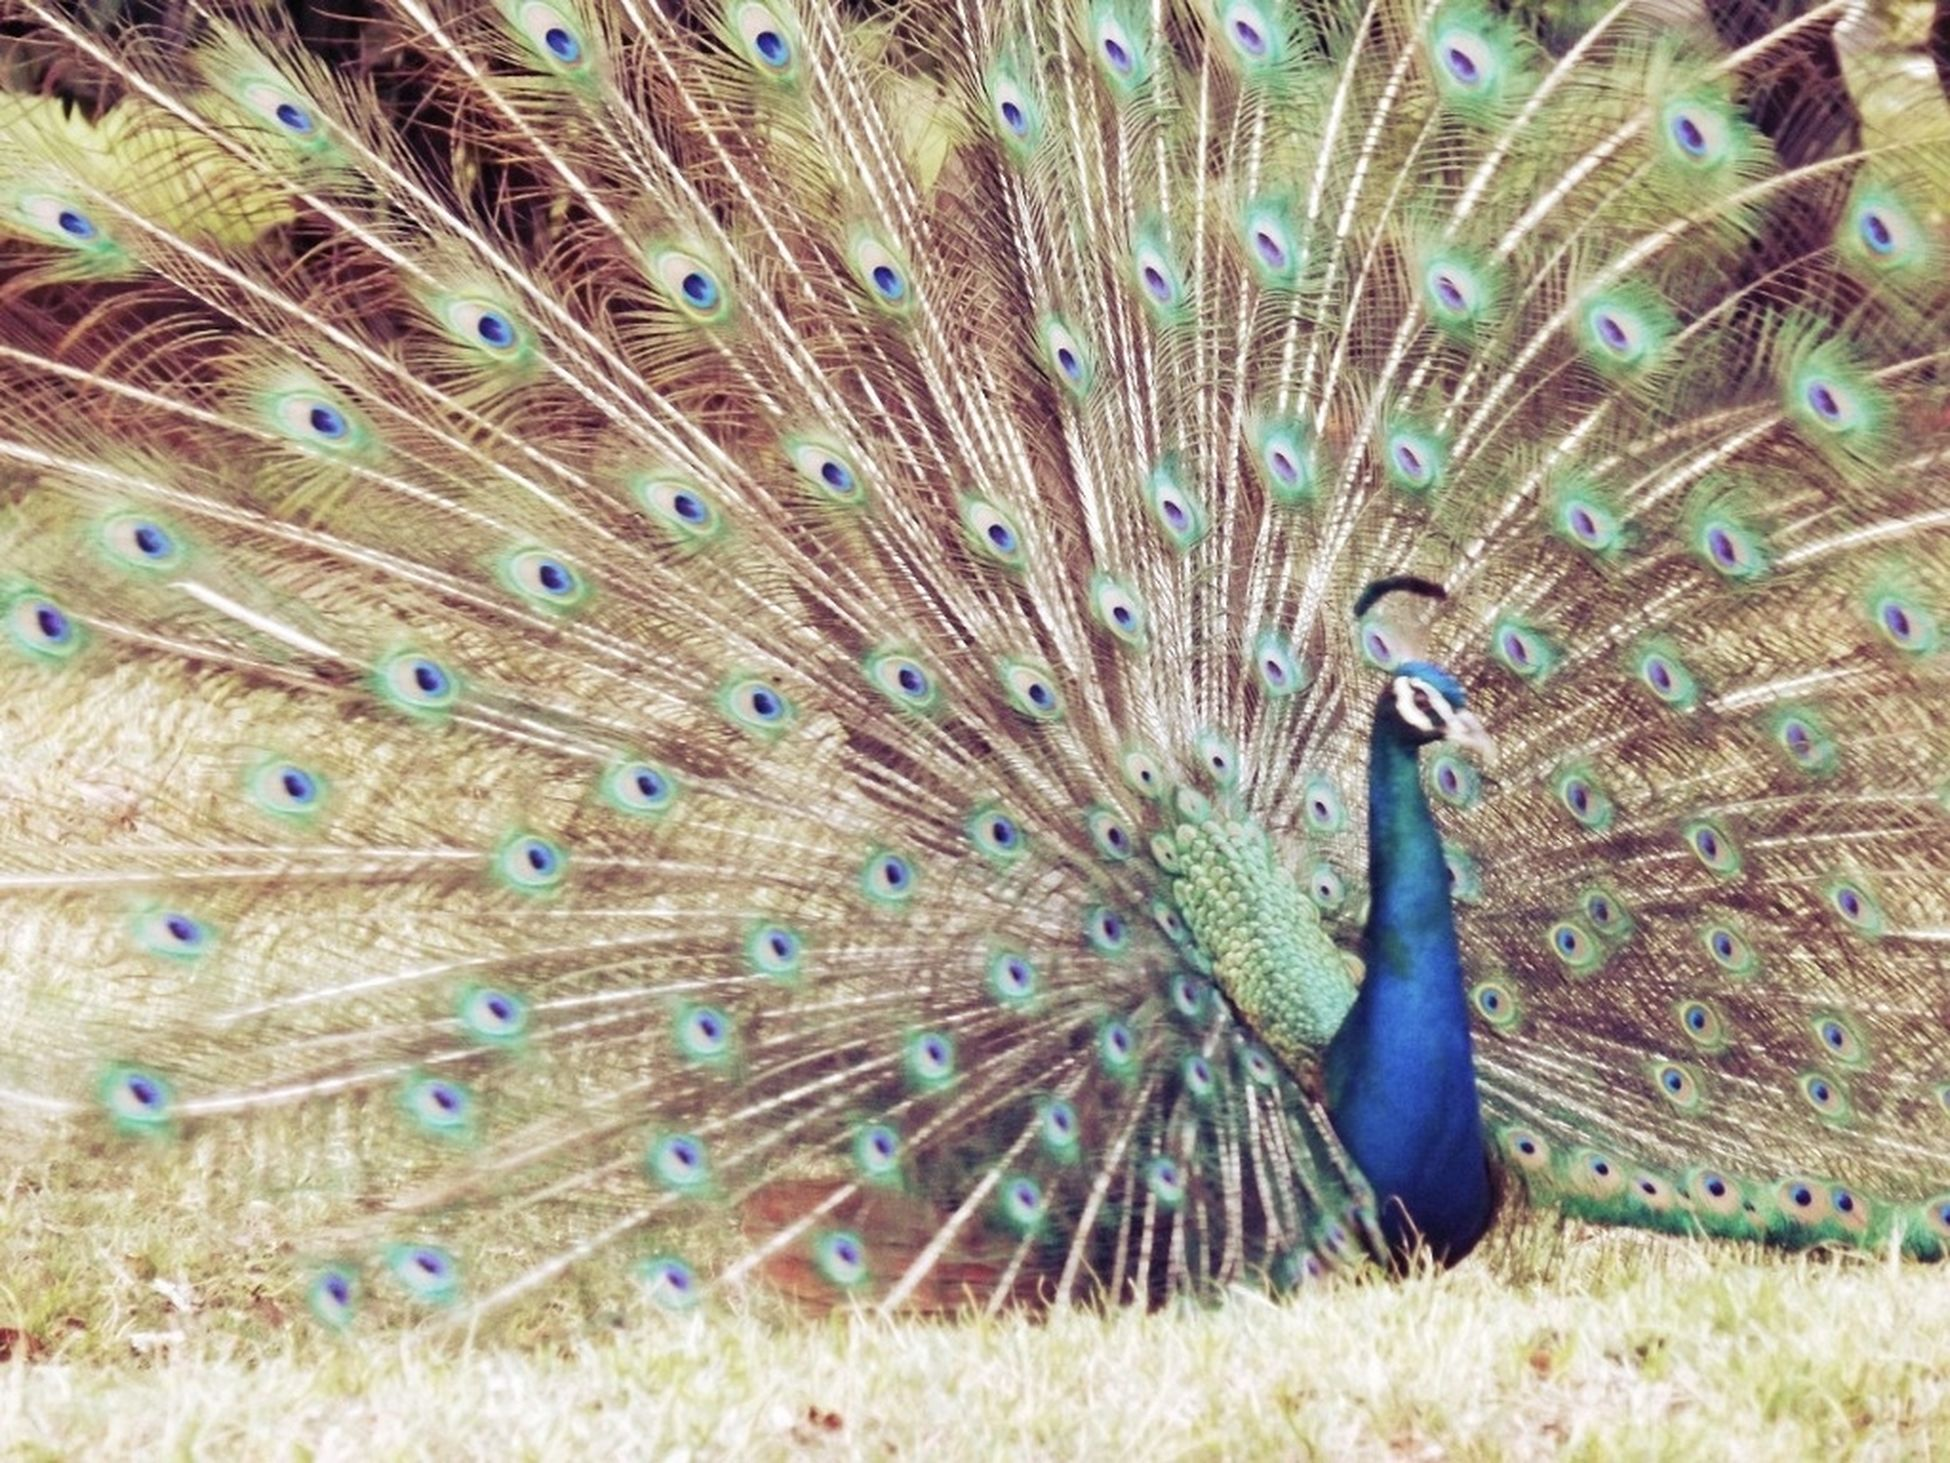 one animal, animal themes, peacock, feather, no people, wildlife, animals in the wild, day, male animal, bird, close-up, full frame, zoology, captivity, close up, geometry, zoology, elegance, simplicity, design, art and craft